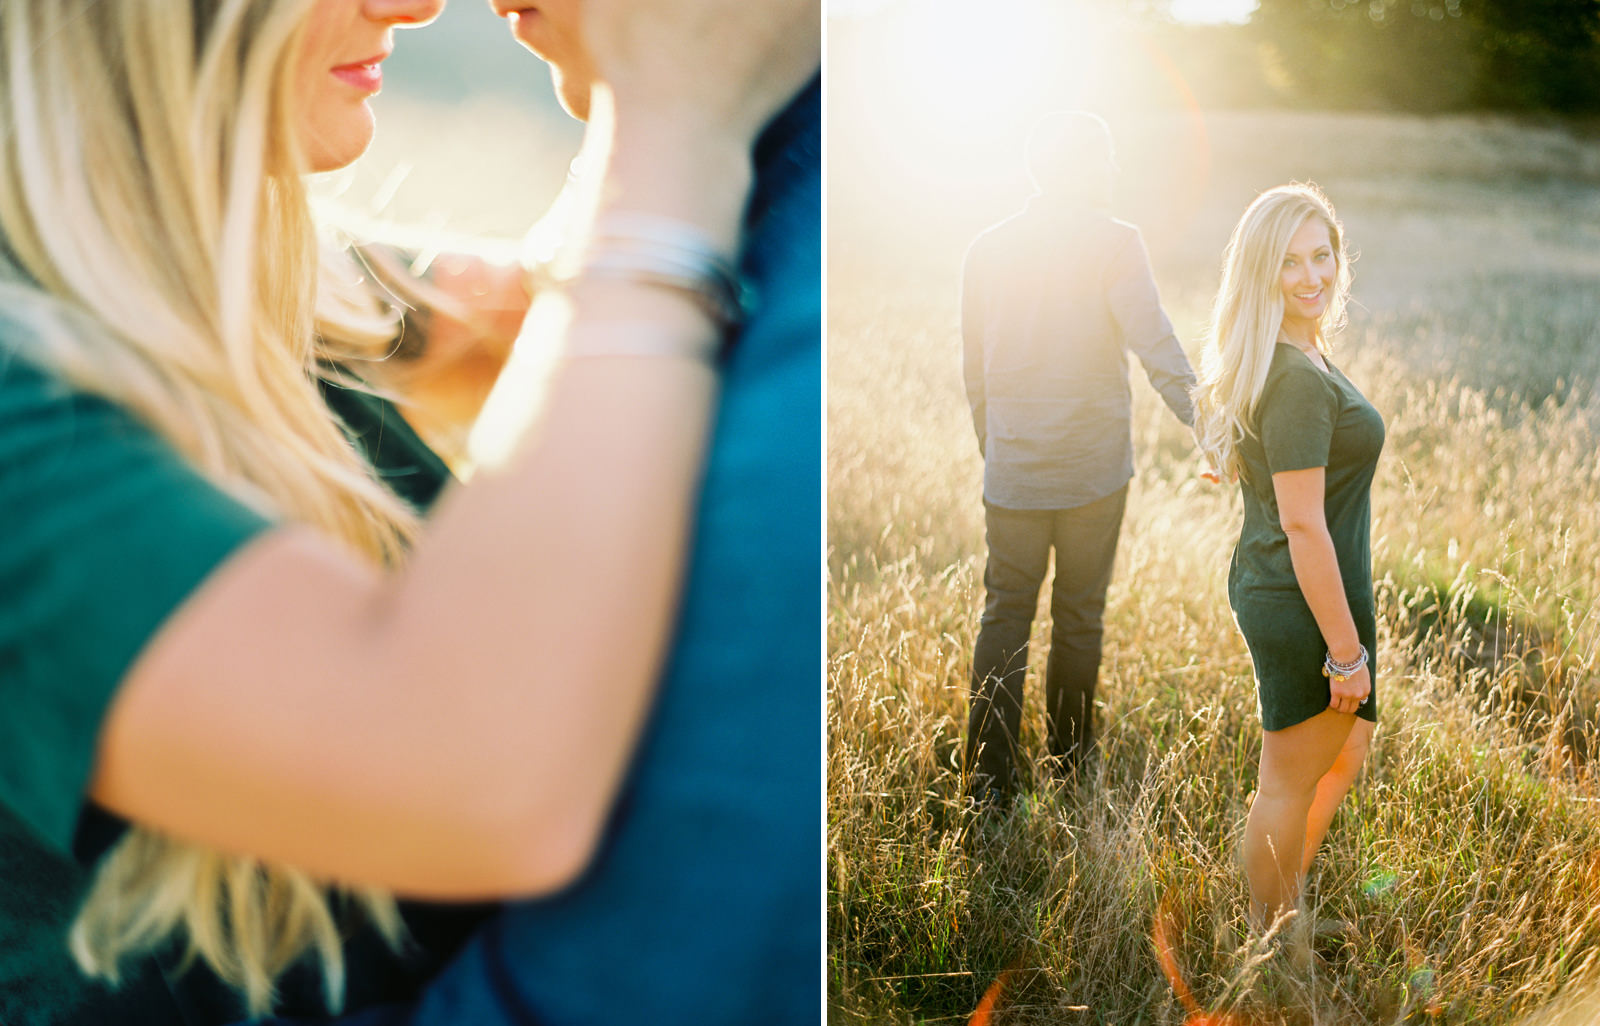 114-sunny-organic-engagement-shoot-by-seattle-film-fine-art-photographer-ryan-flynn.jpg